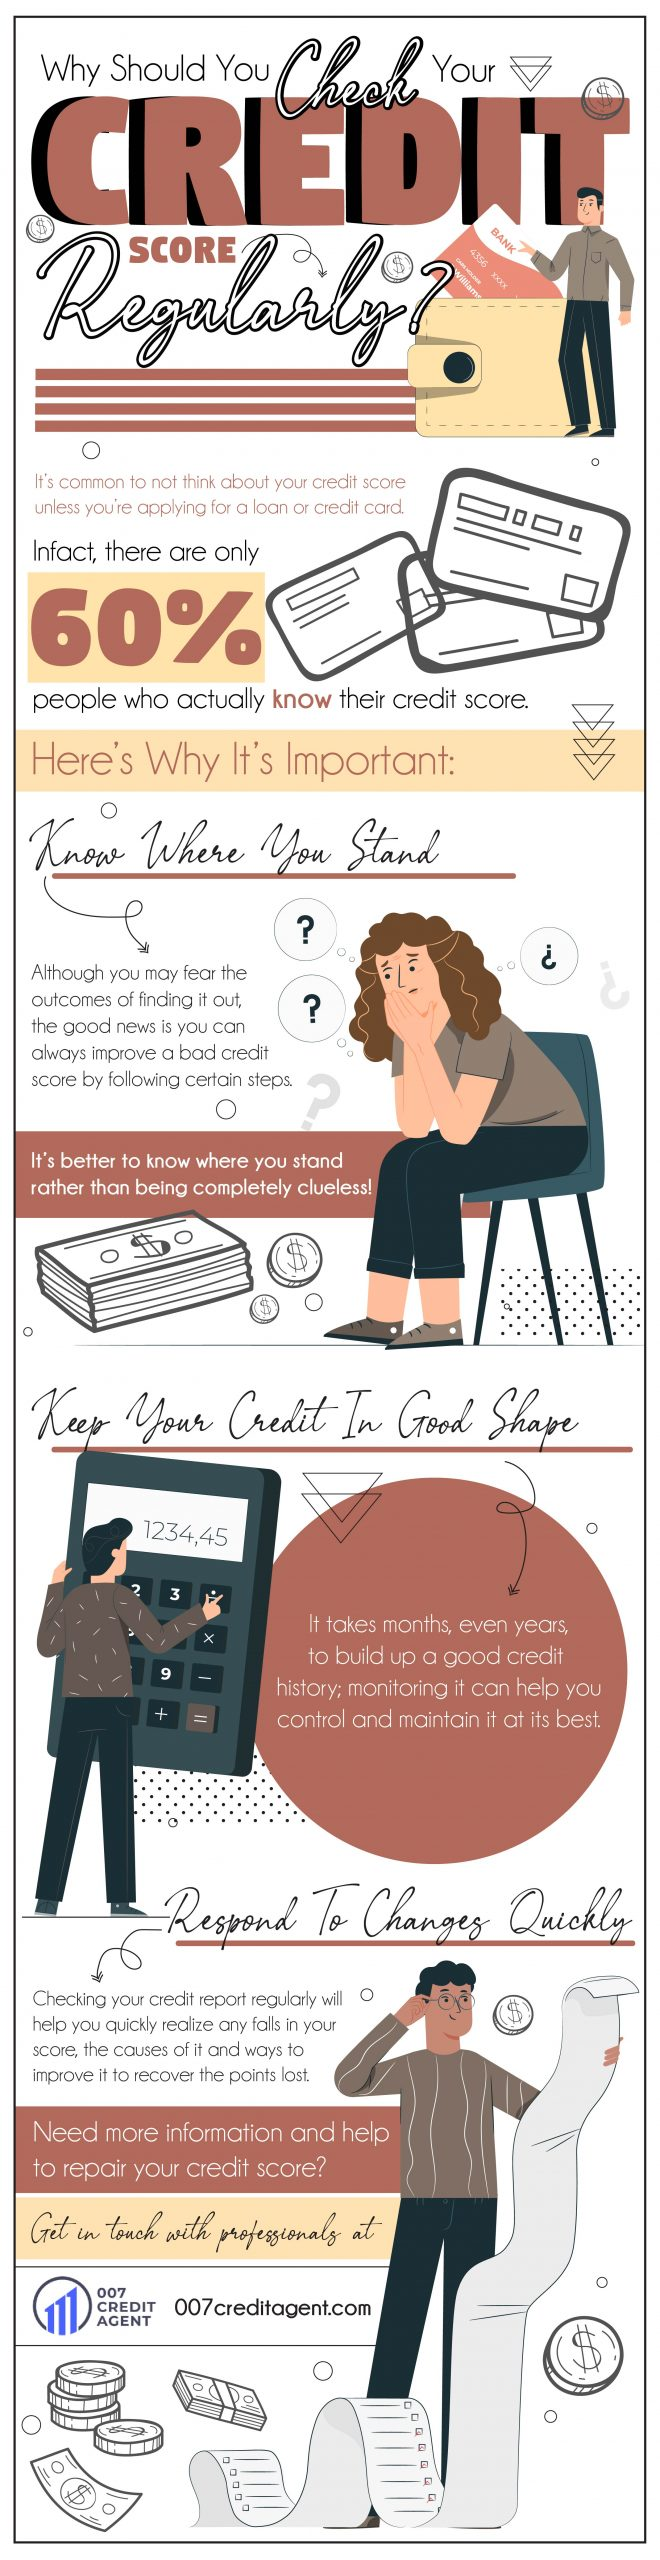 Why Should you Check Your Credit Score Regularly